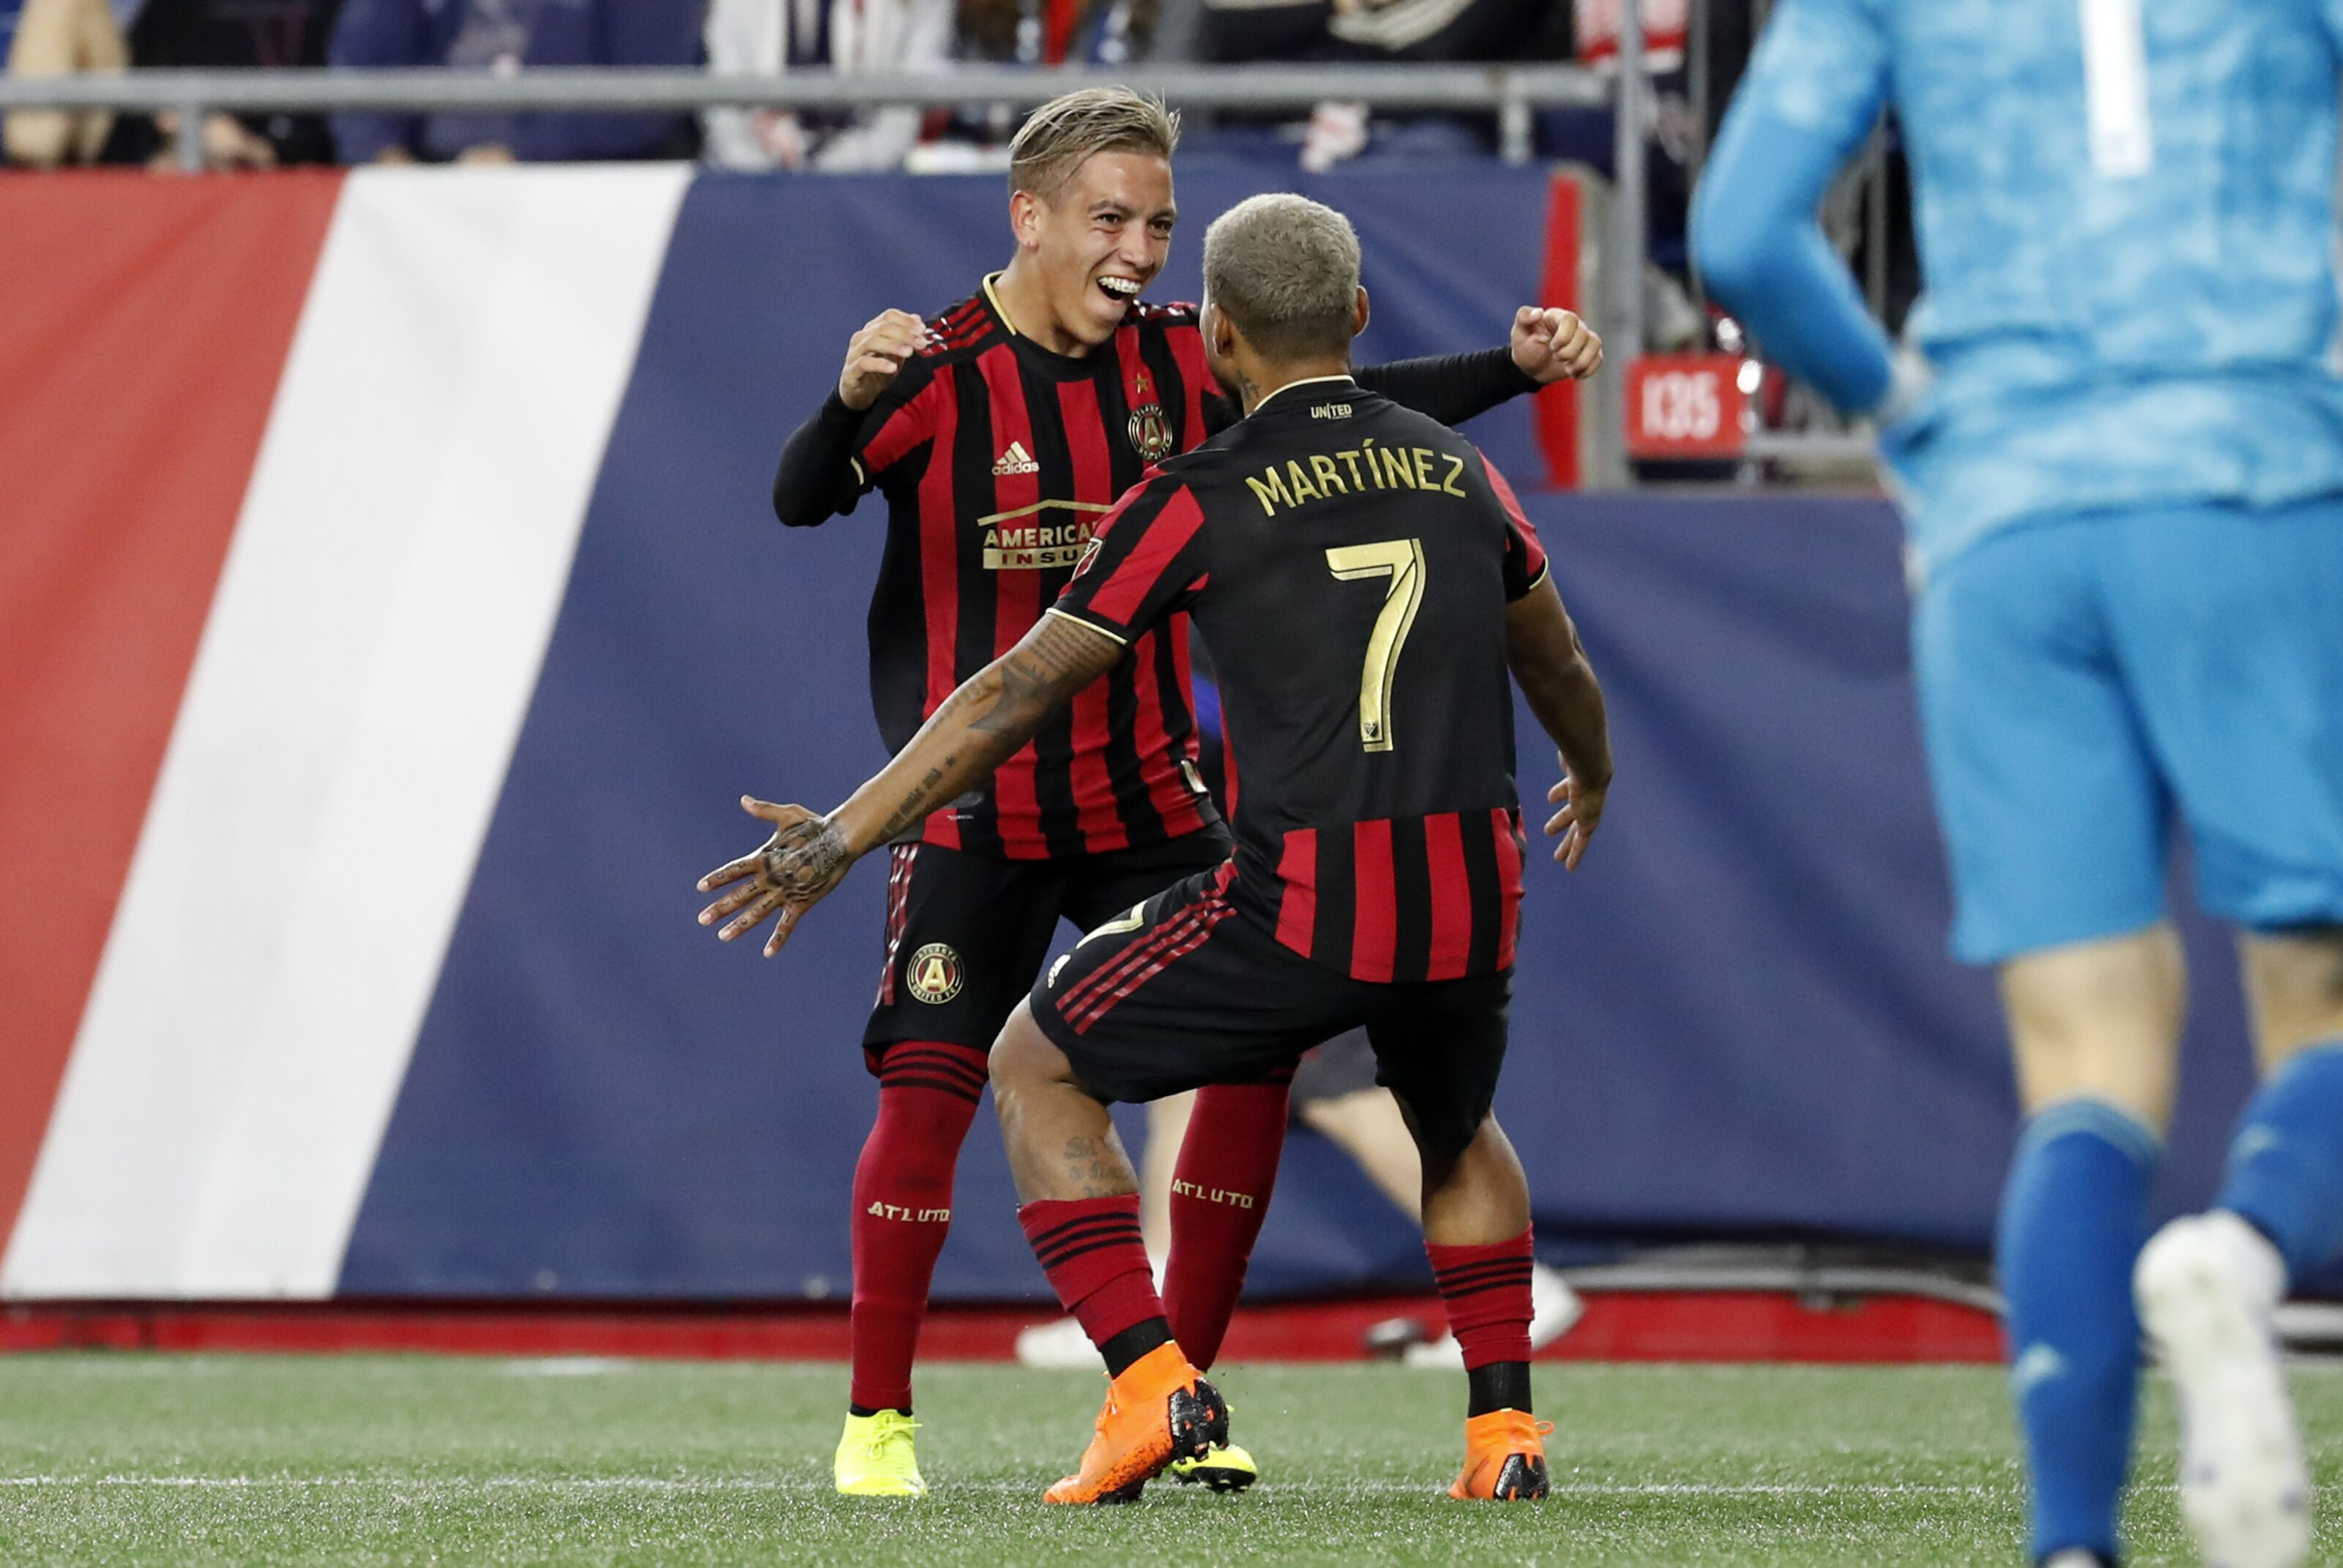 huge selection of 4e0d8 87f83 Atlanta United Vs New England Revolution: 3 things we ...